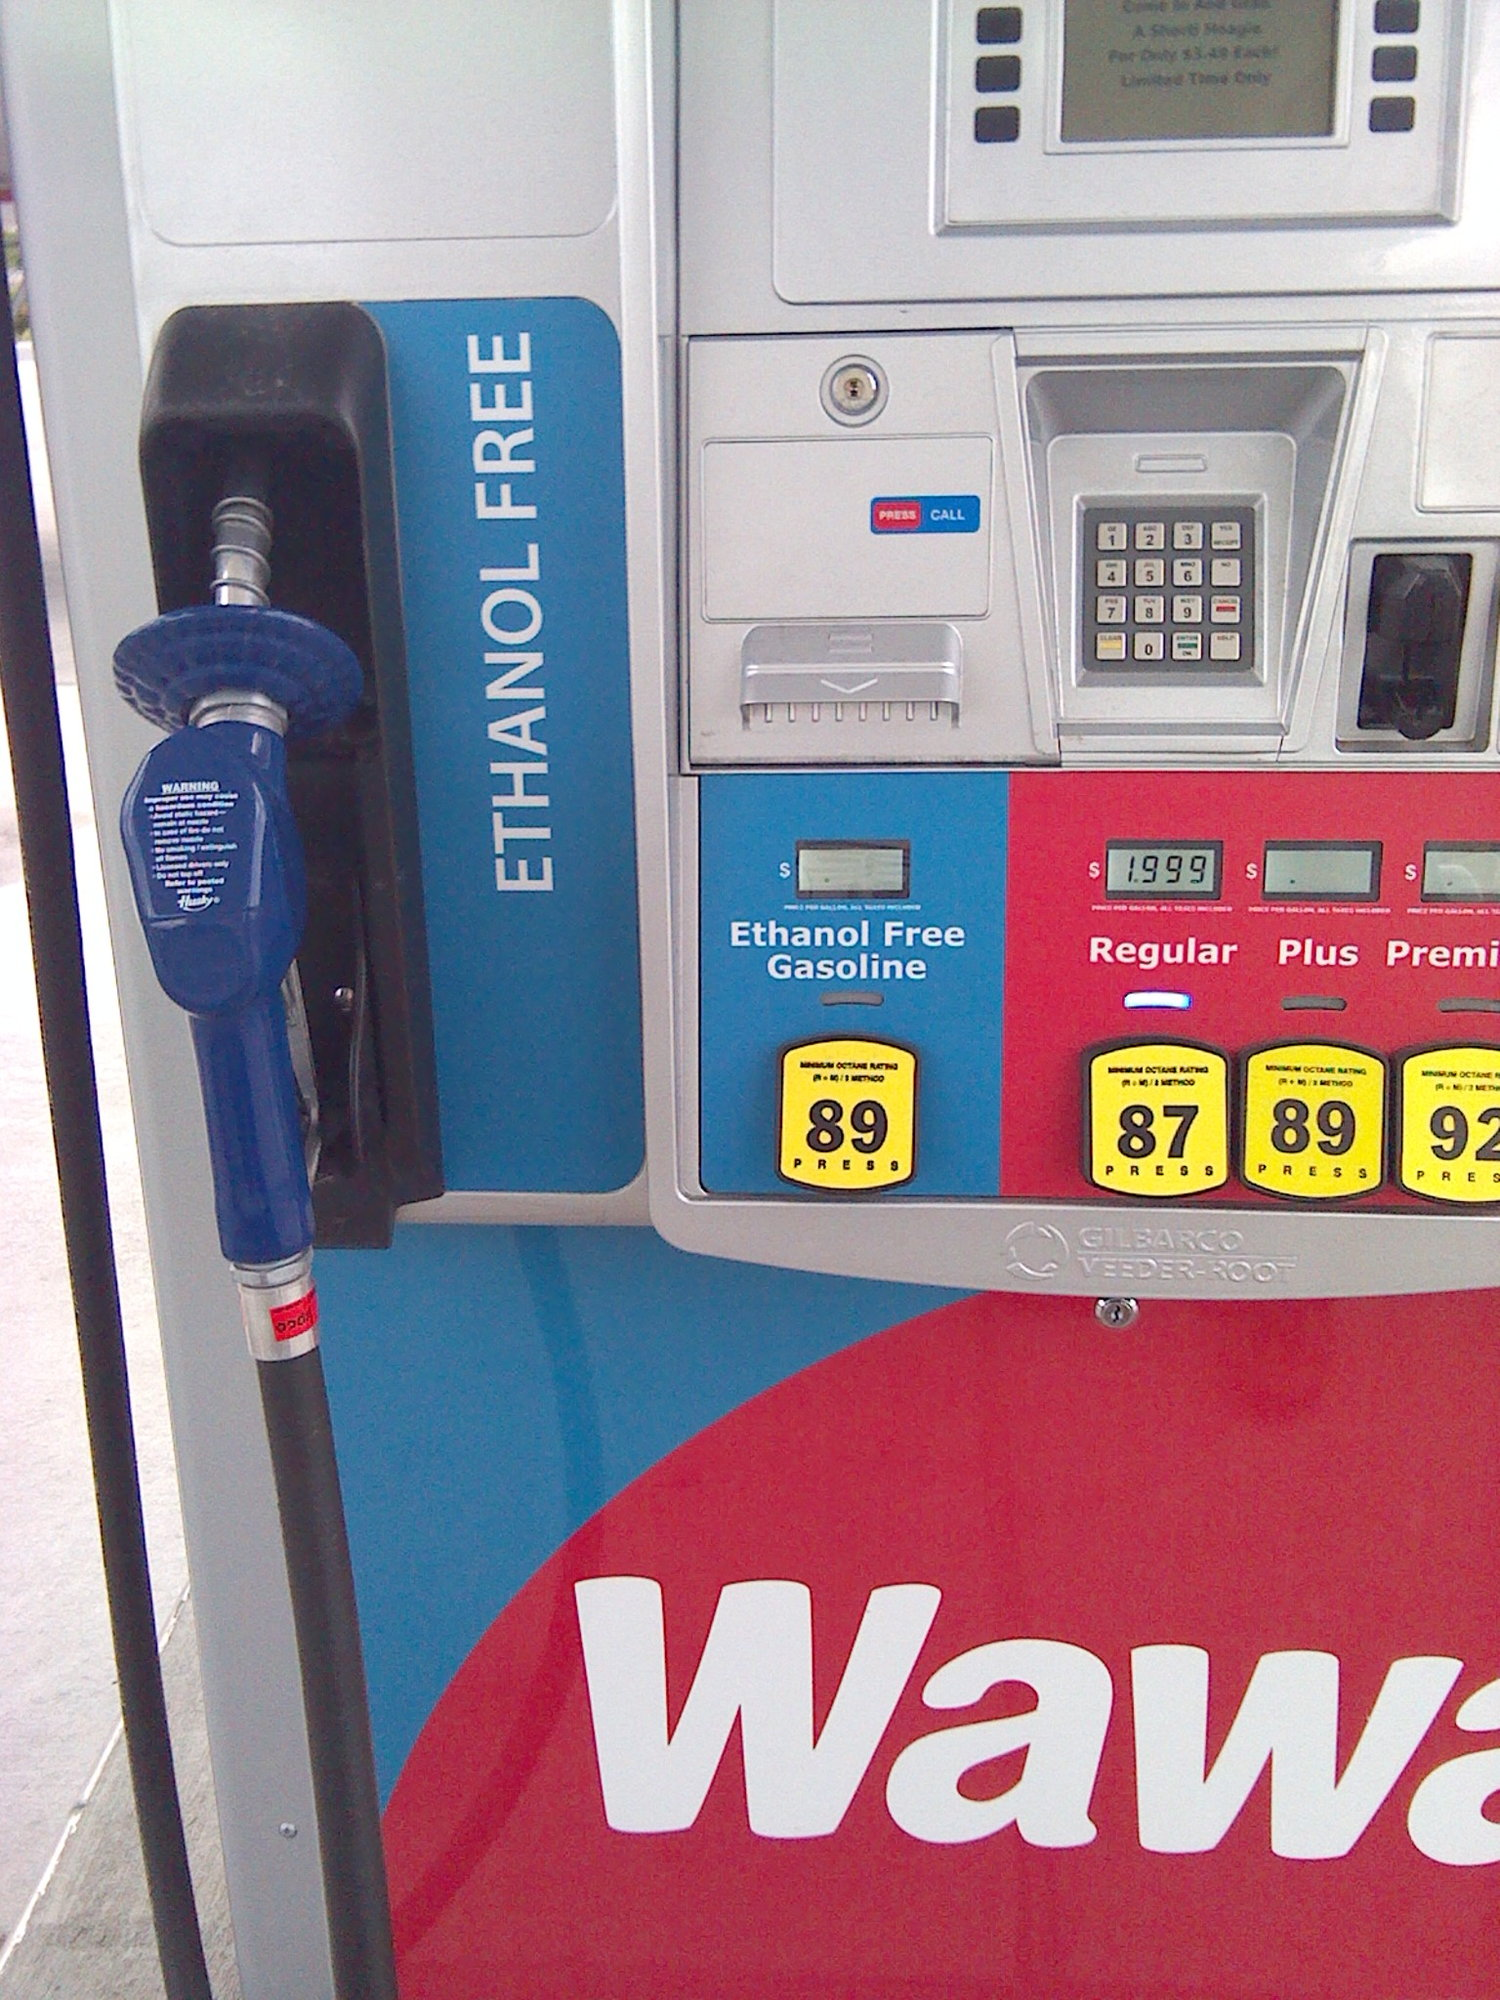 Ethanol Free Gas Near Me | Upcoming New Car Release 2020